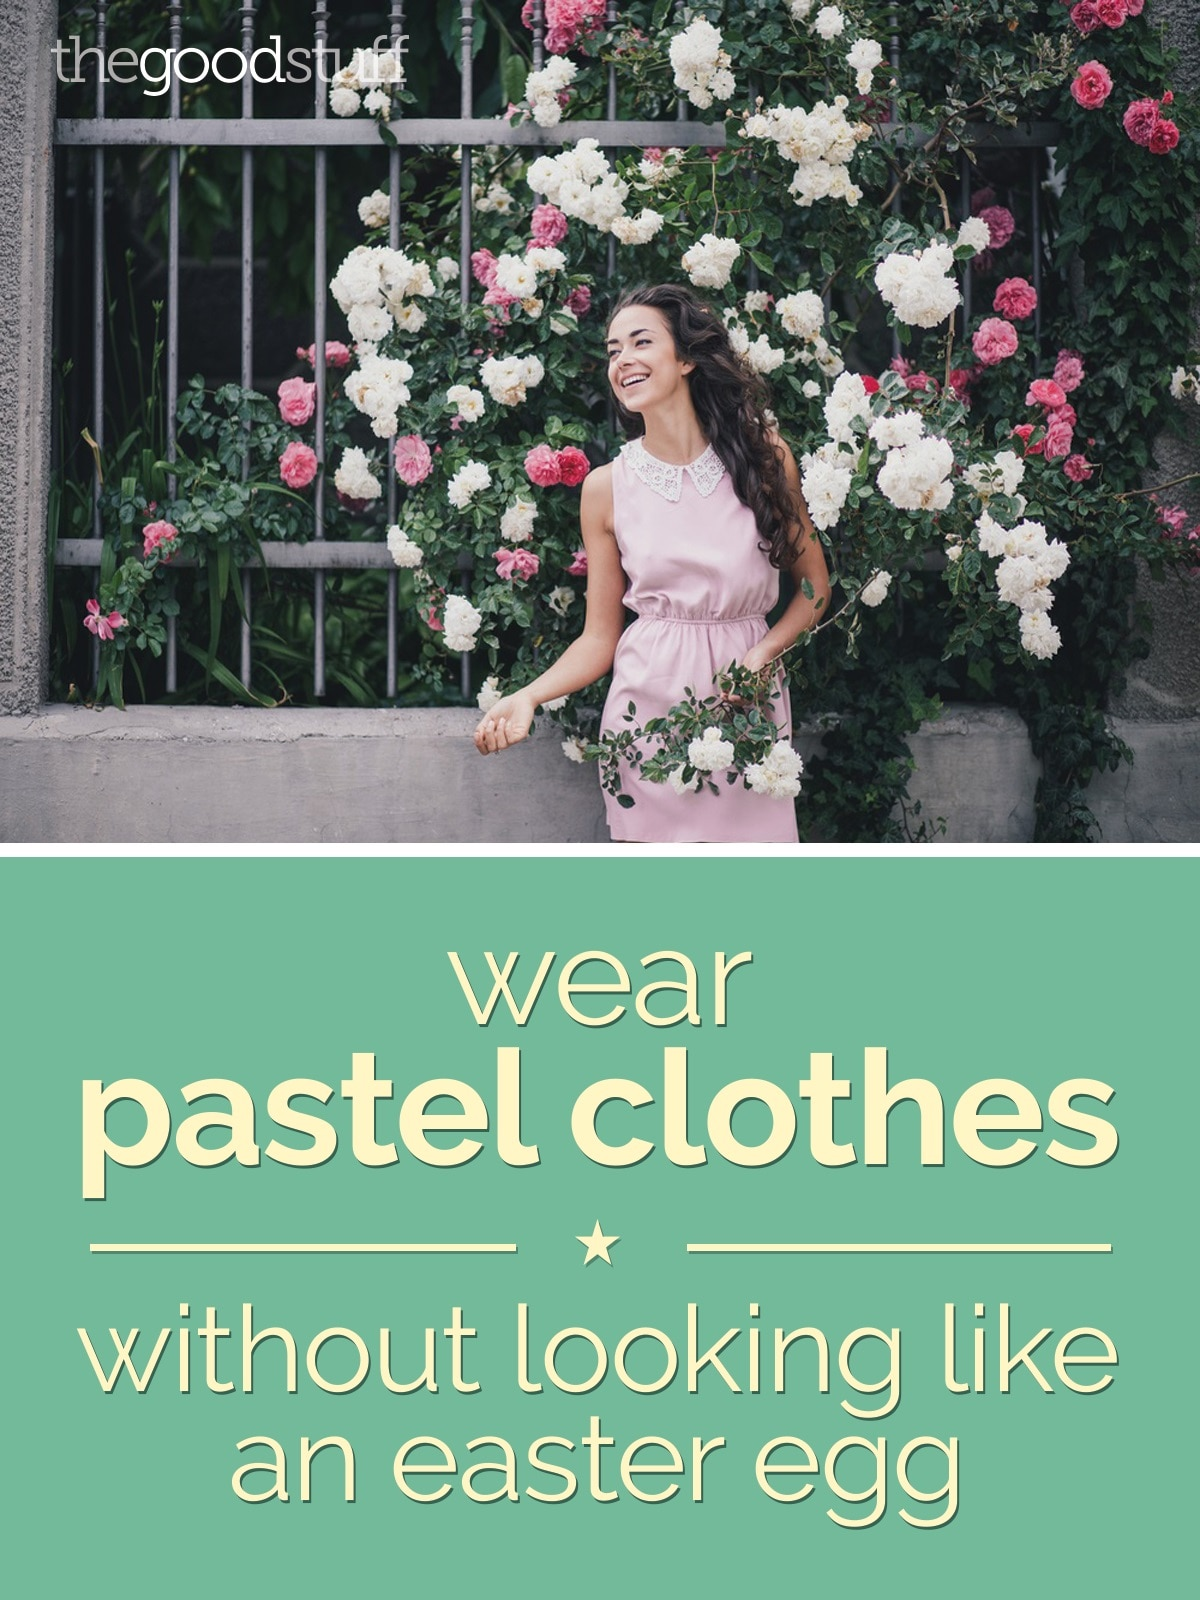 style-wear-pastel-clothes